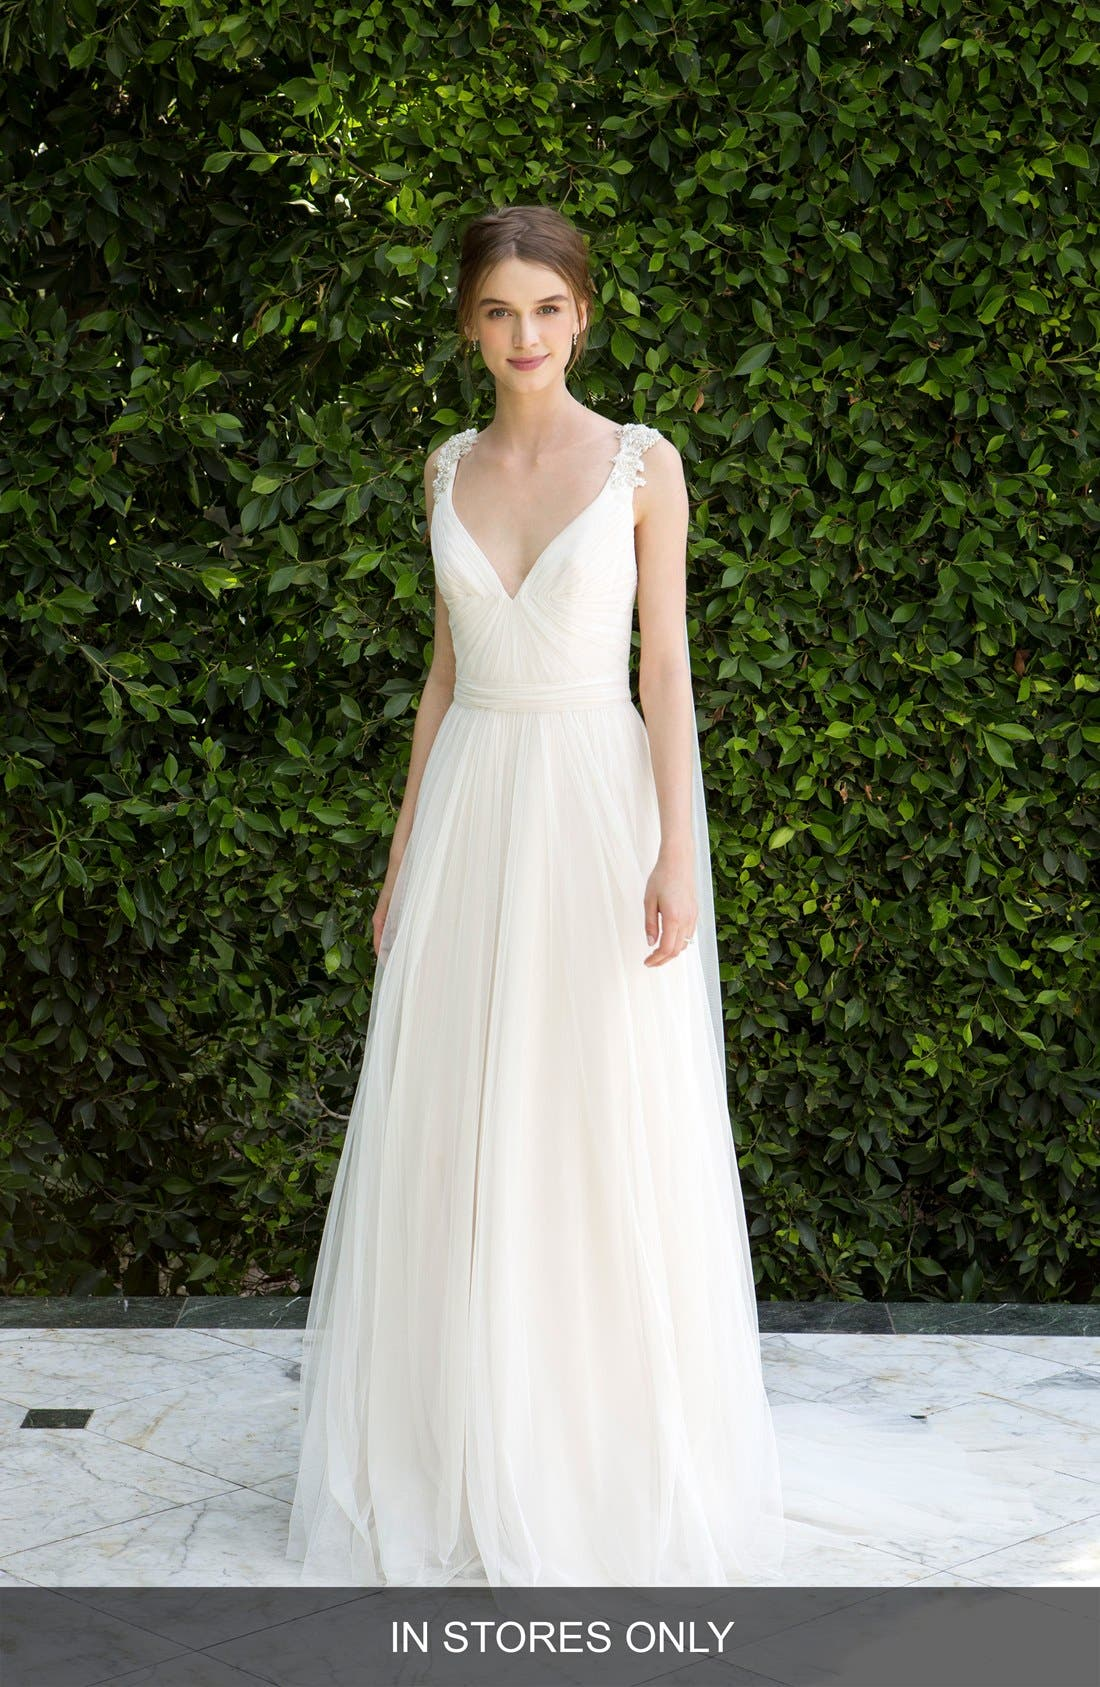 Beaded Soft Tulle Dress with Tails,                             Main thumbnail 1, color,                             904